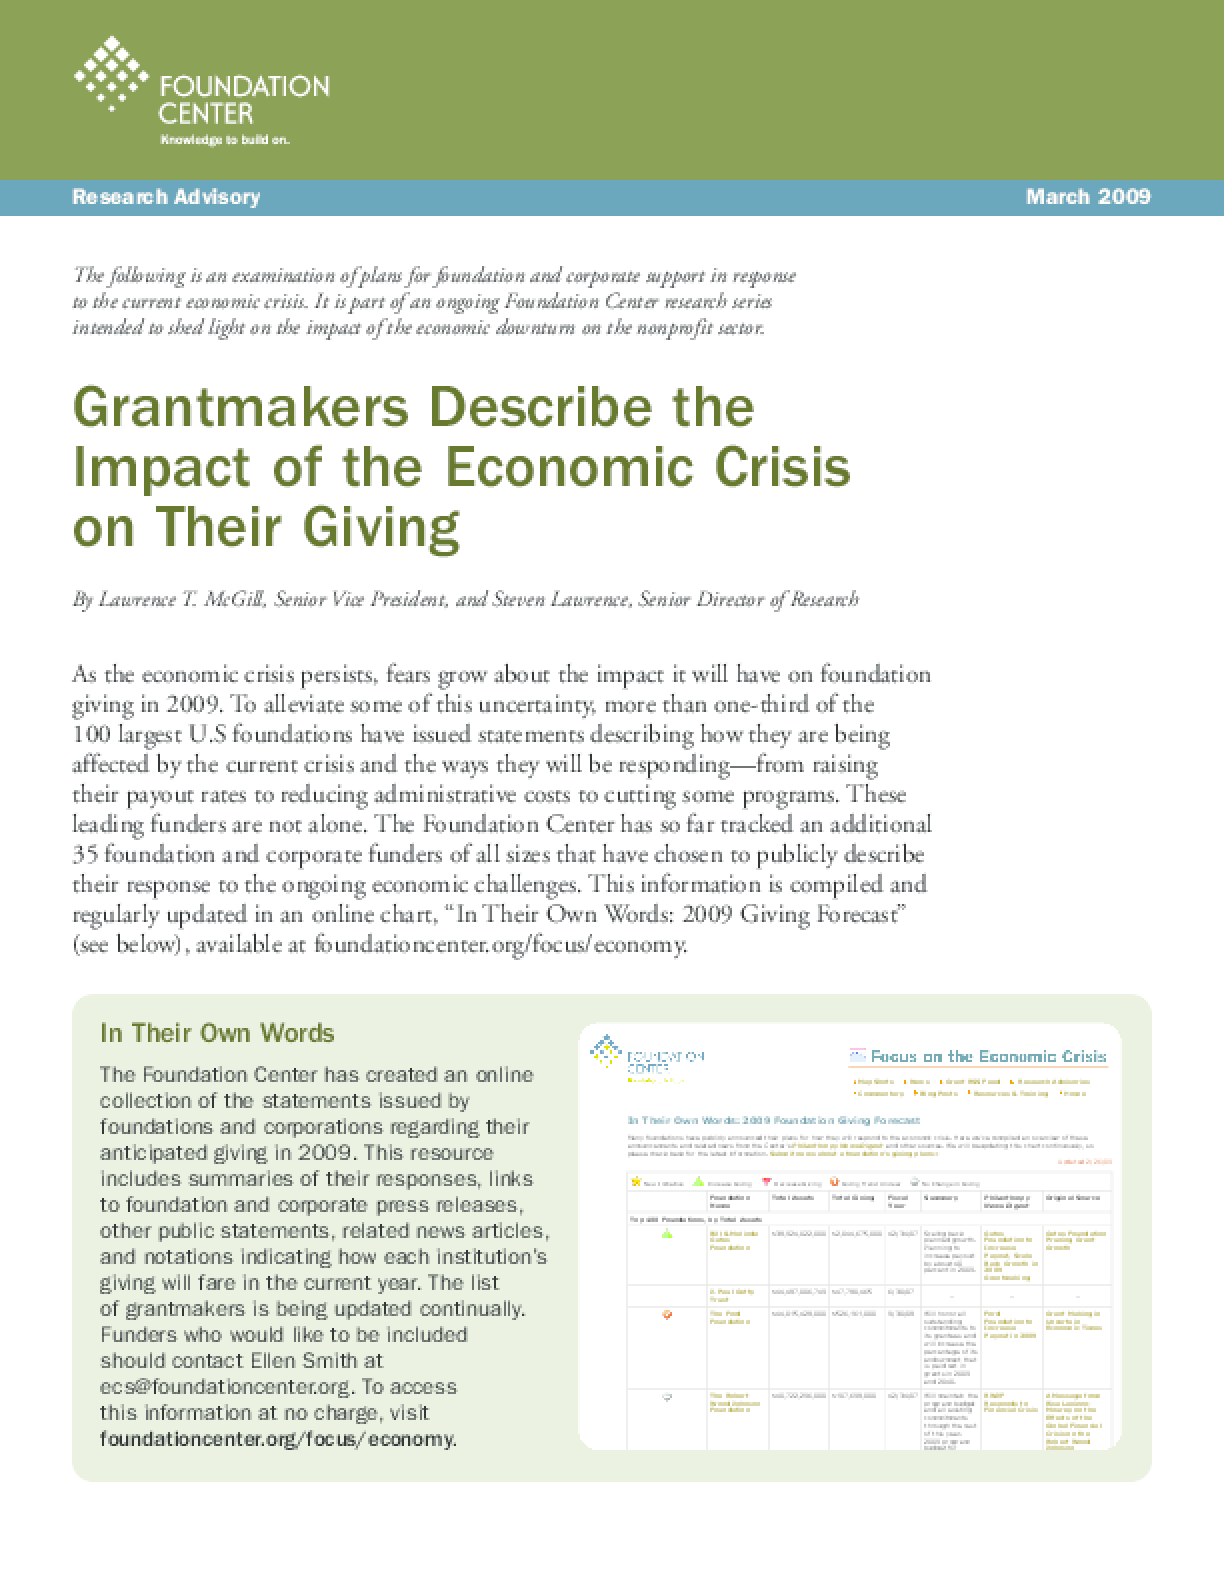 Grantmakers Describe the Impact of the Economic Crisis on Their Giving